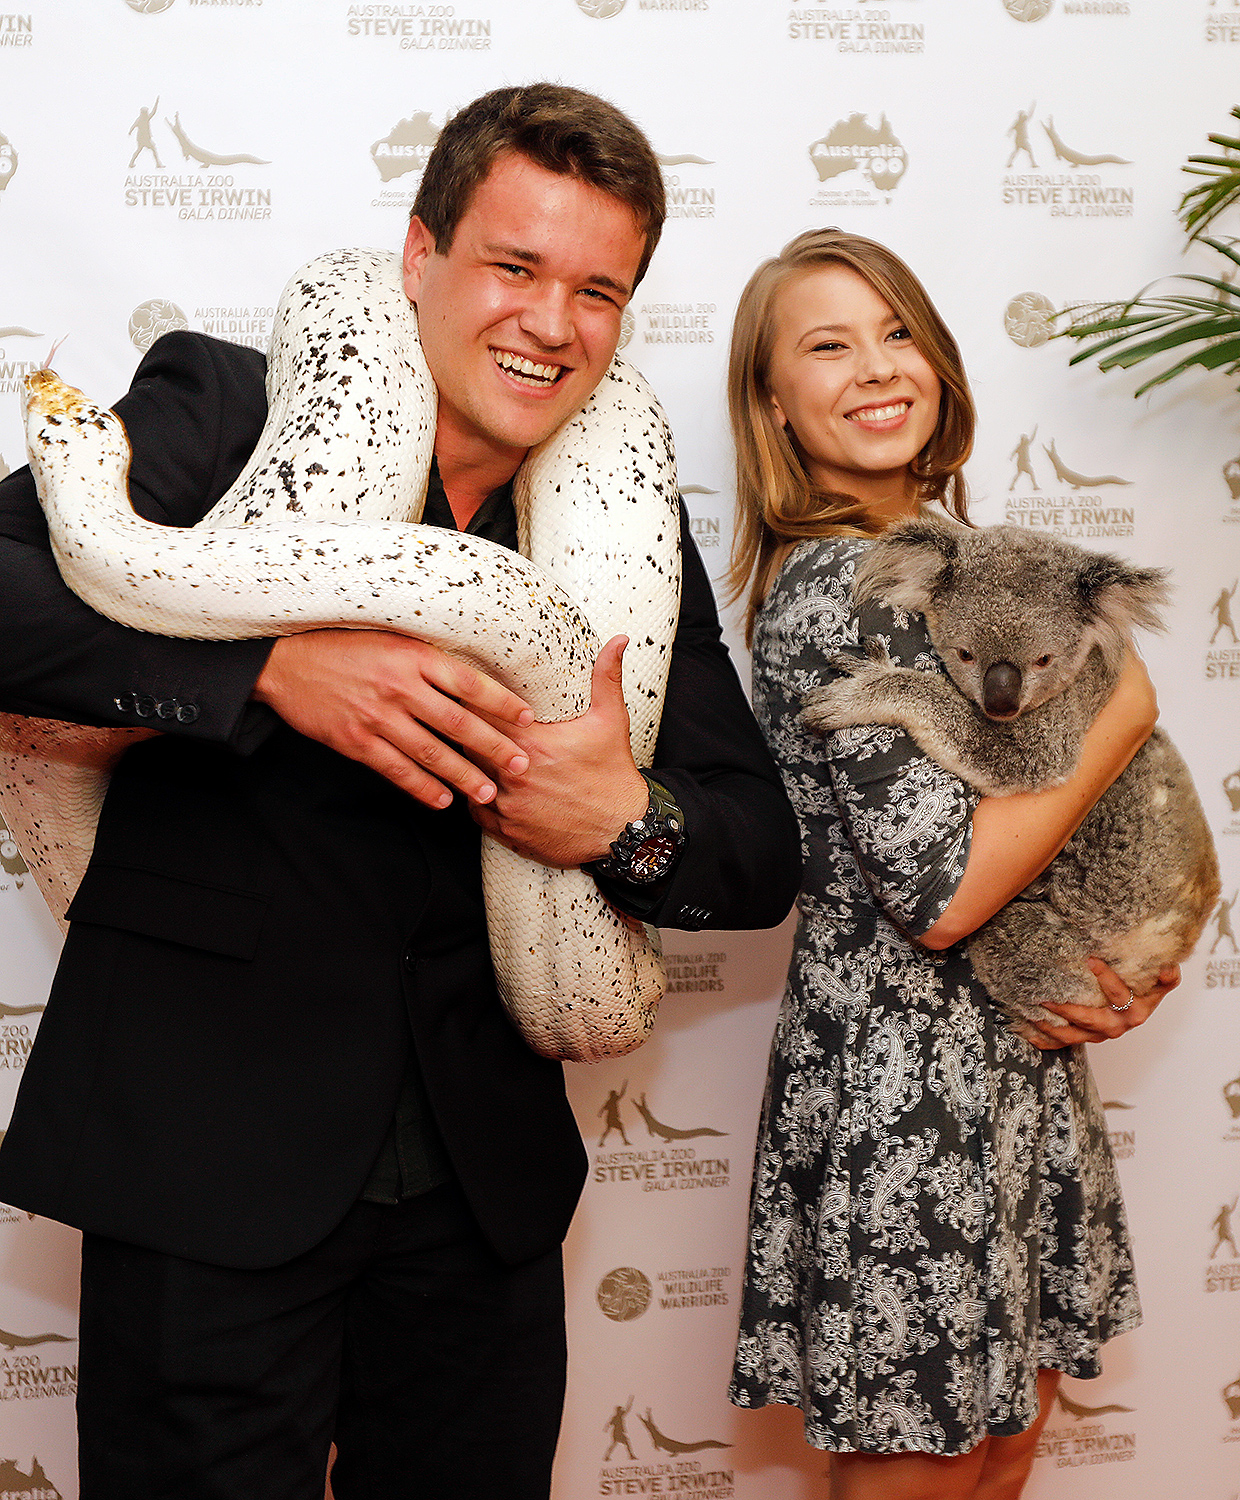 EXCLUSIVE: Bindi Irwin & Chandler Powell host the 11th Annual Steve Irwin Gala Dinner